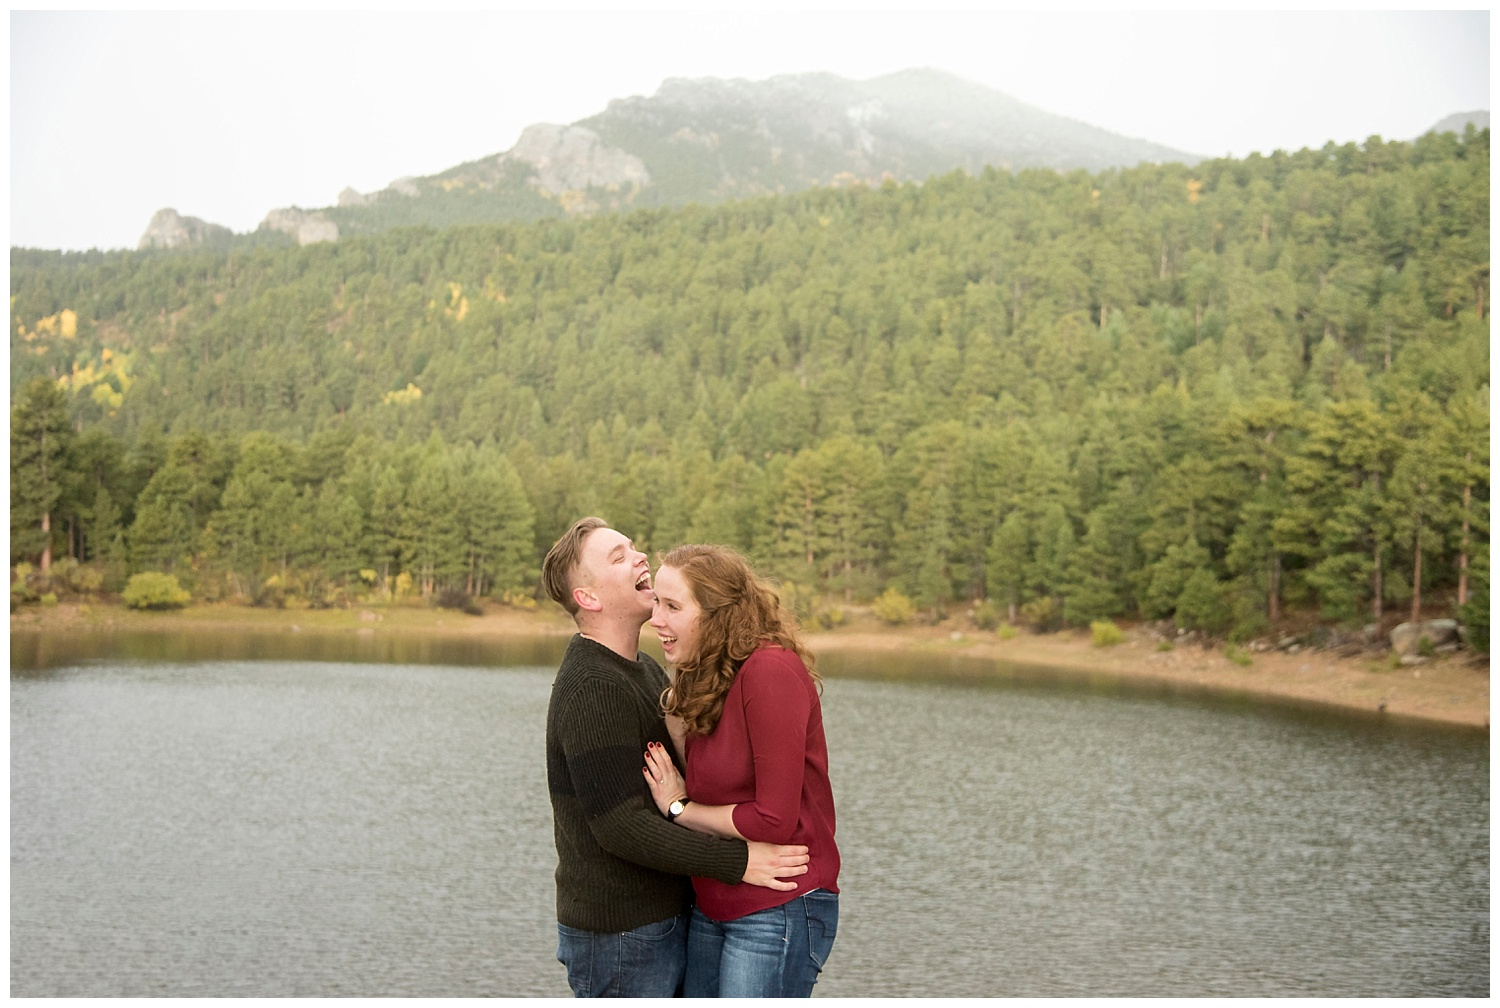 Mountain Engagement Photography | Don & Aliyah's Mountain Engagement Photography | Farm Wedding Photographer | Apollo Fields Wedding Wedding Photojournalism